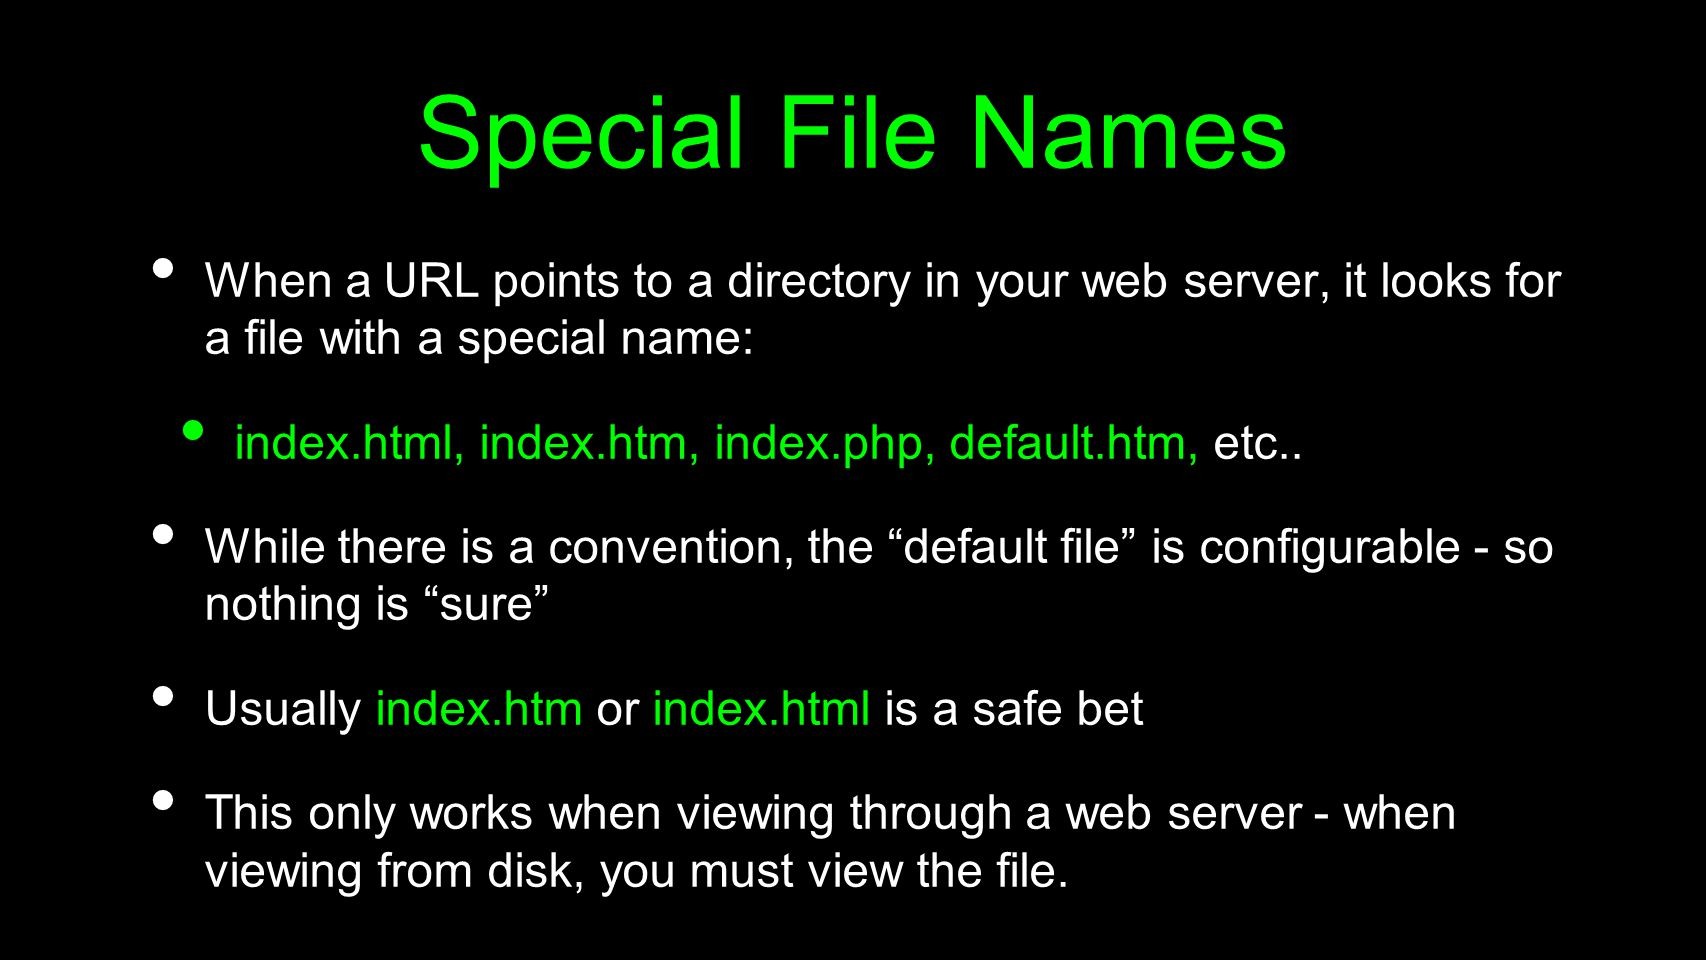 Special File Names When a URL points to a directory in your web server, it looks for a file with a special name: index.html, index.htm, index.php, default.htm, etc..